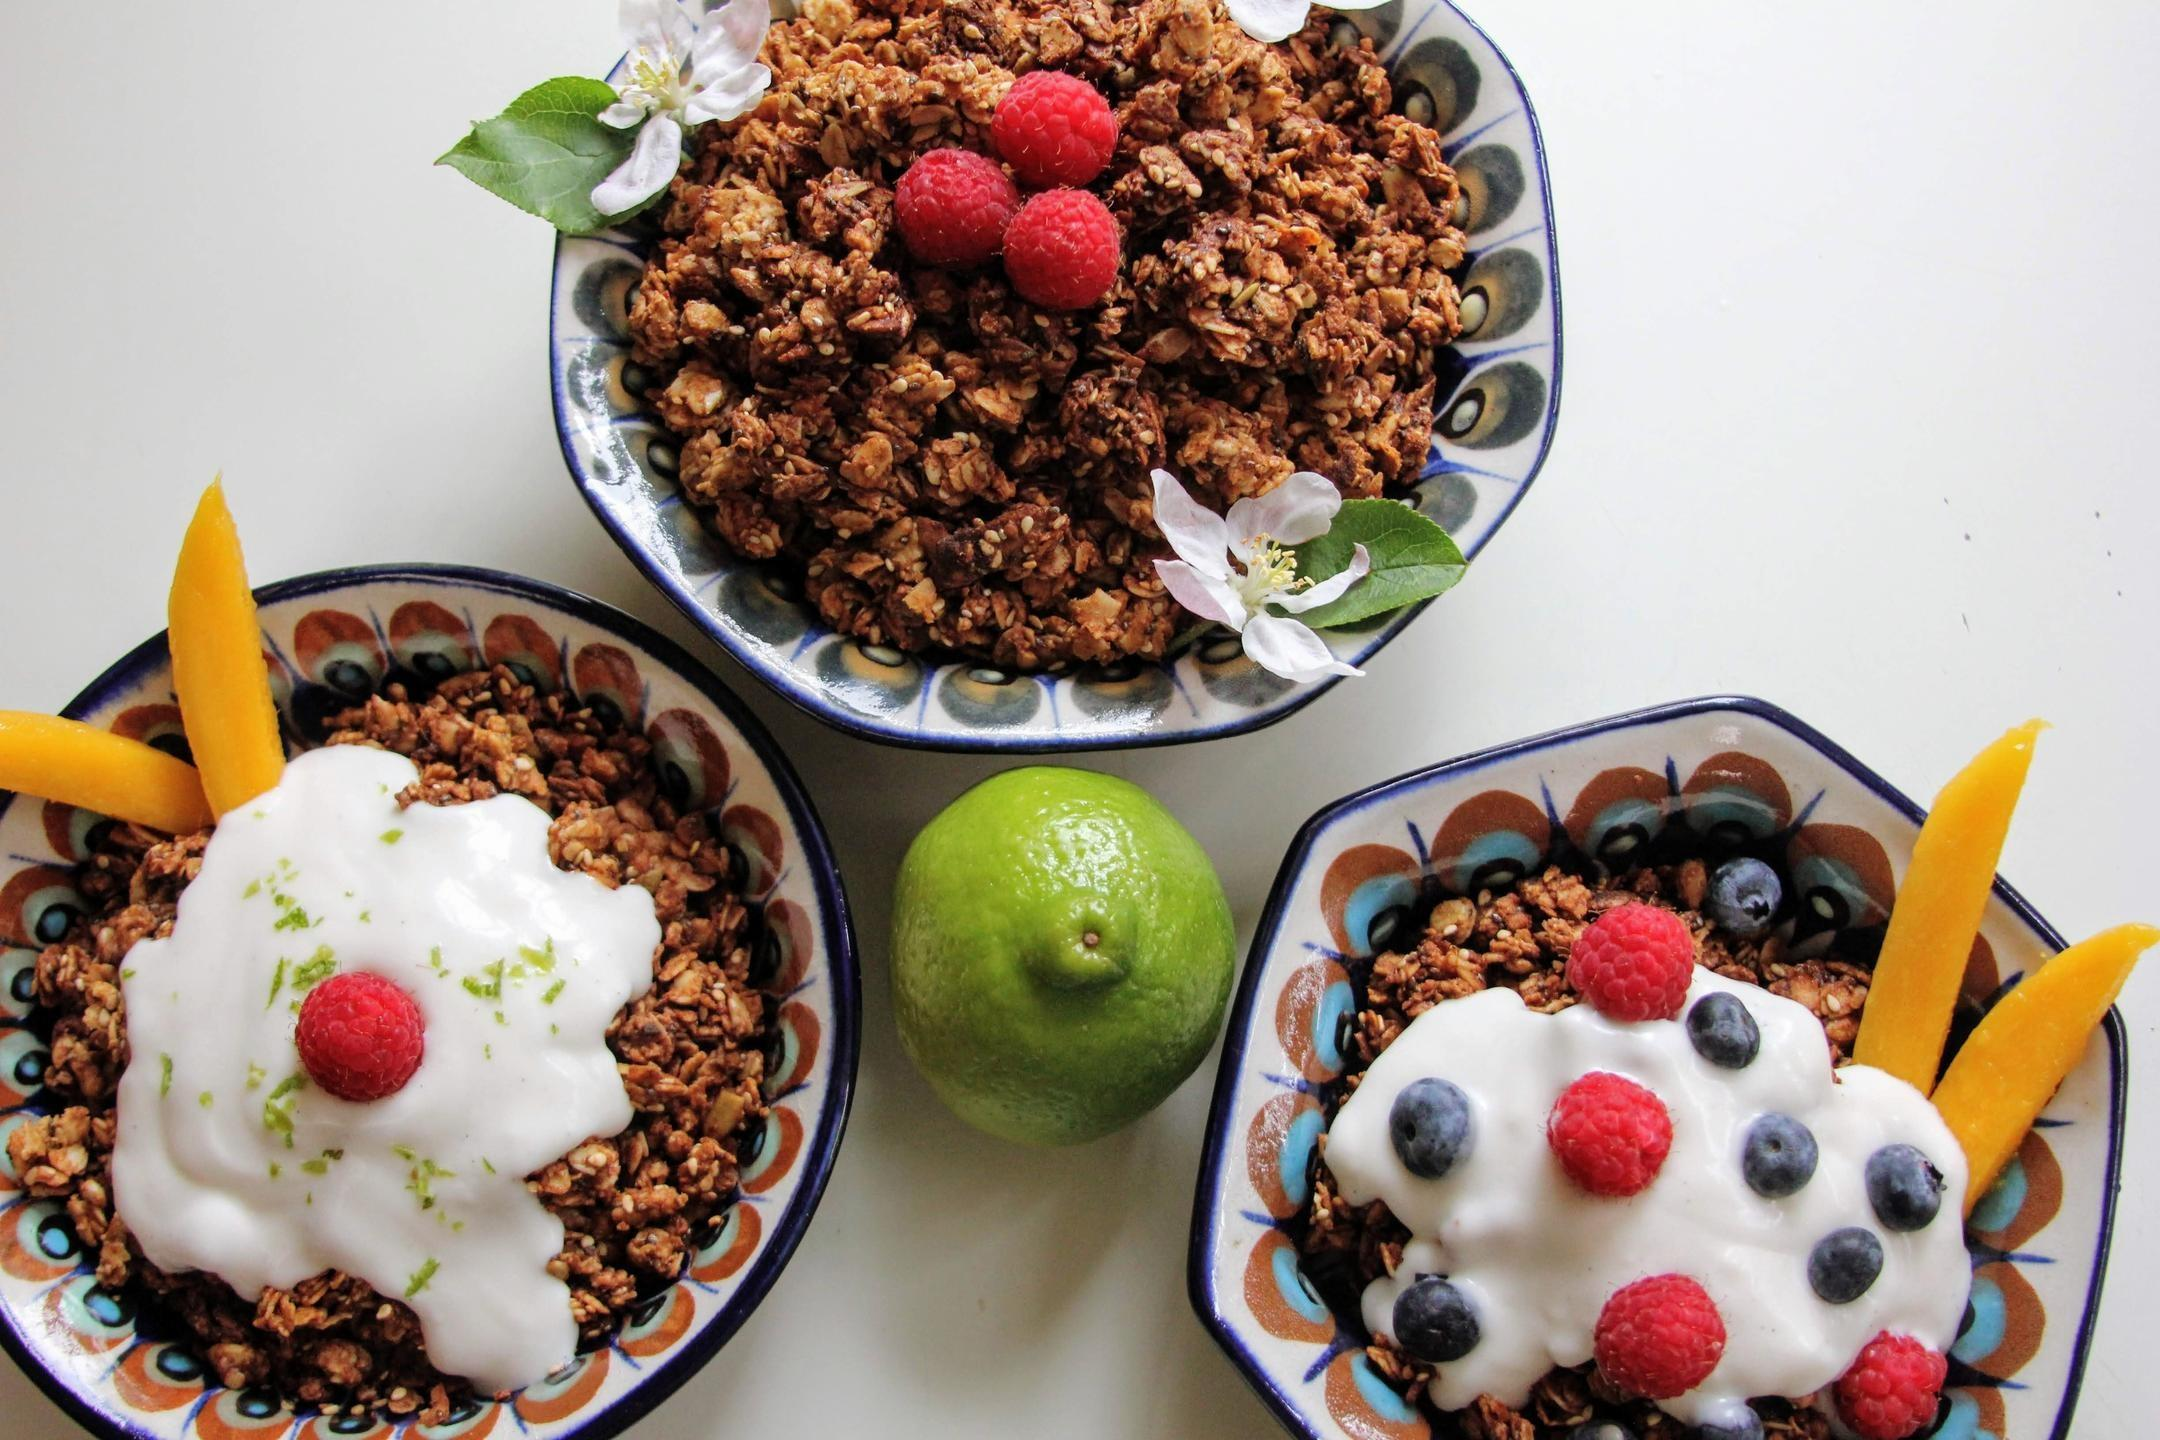 Vegan High-Protein Nut-Free Granola in 3 bowls with vegan yogurt and fruit toppings